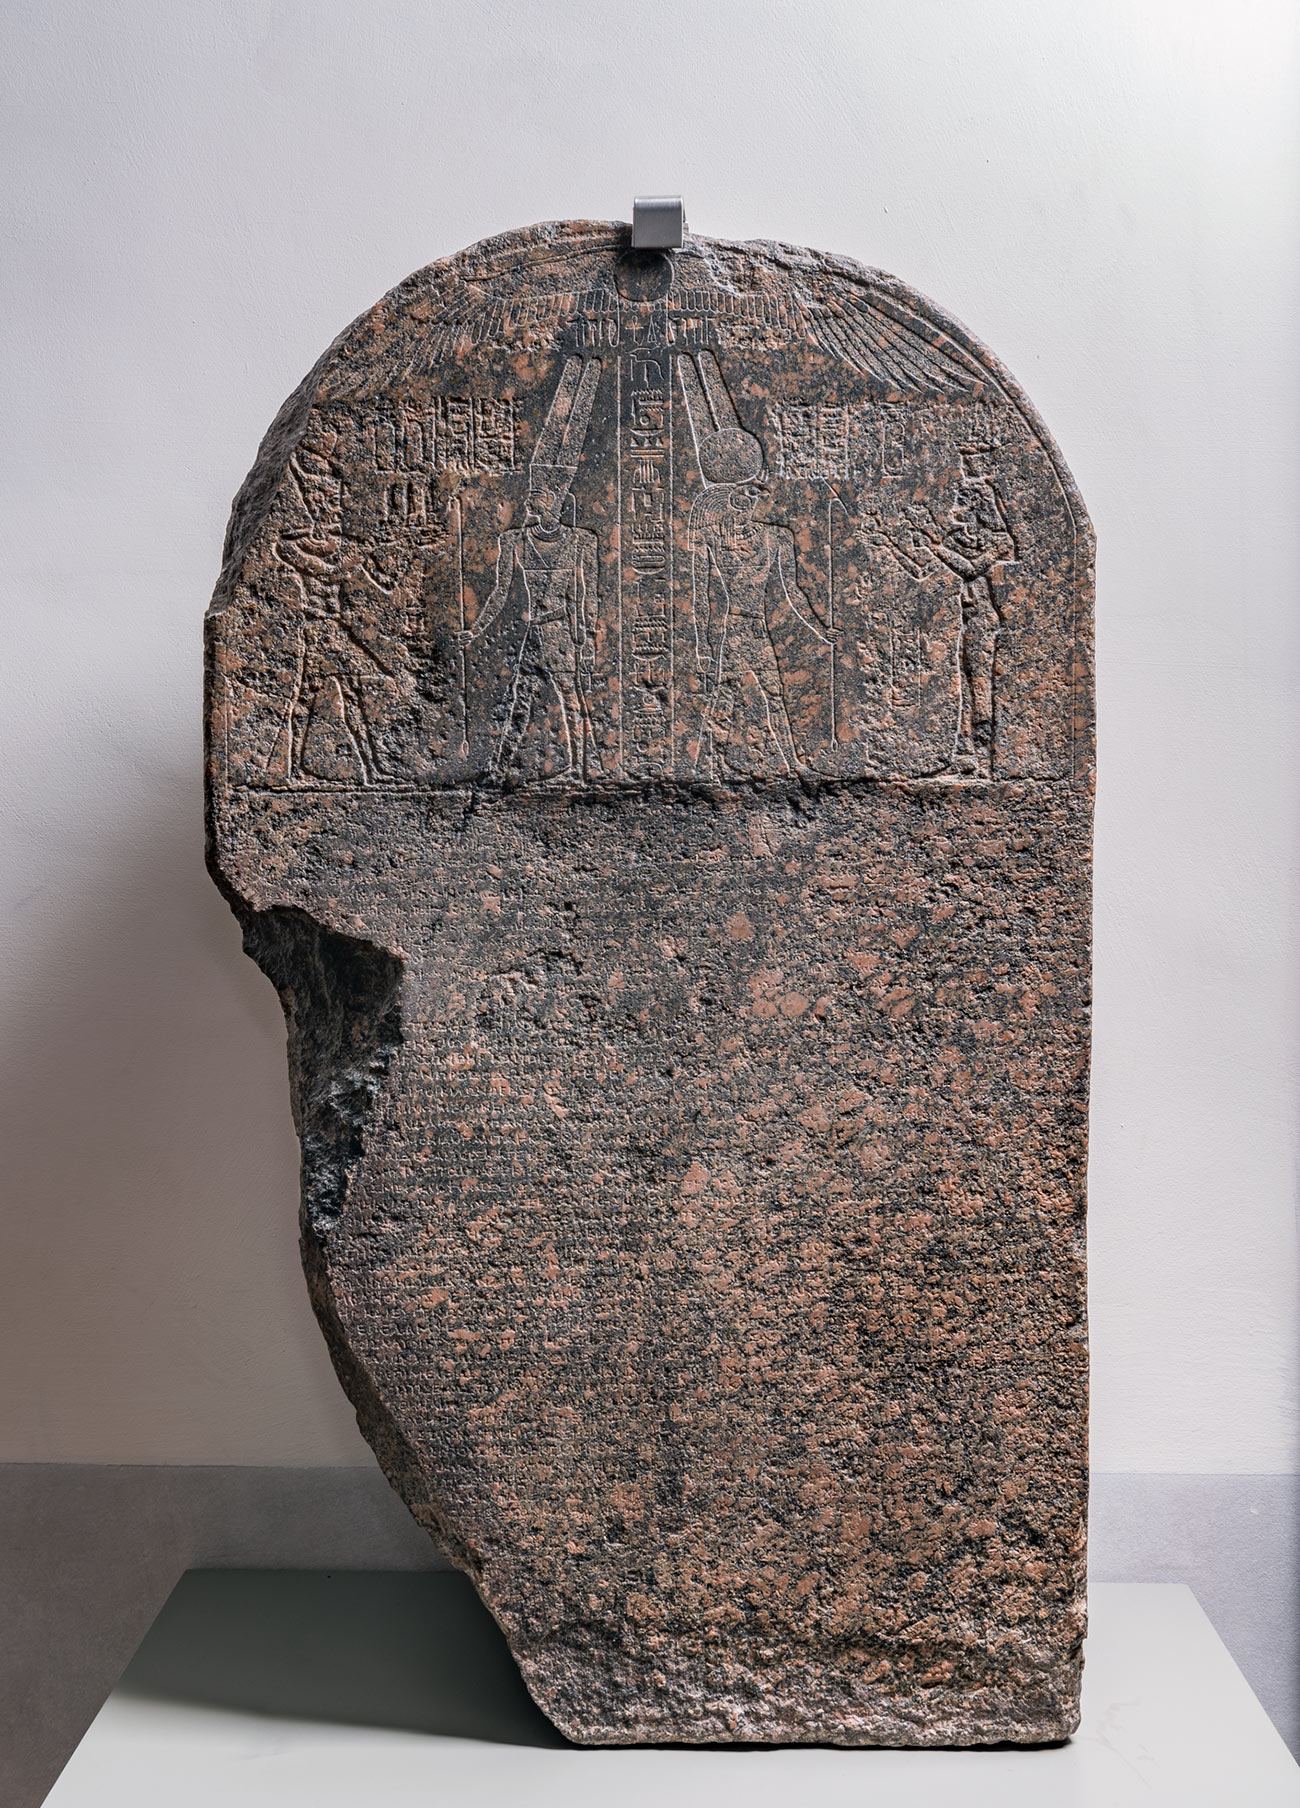 A large, upright, chipped slab of dark, purplish granite incised with multiple lines of ancient Egyptian text